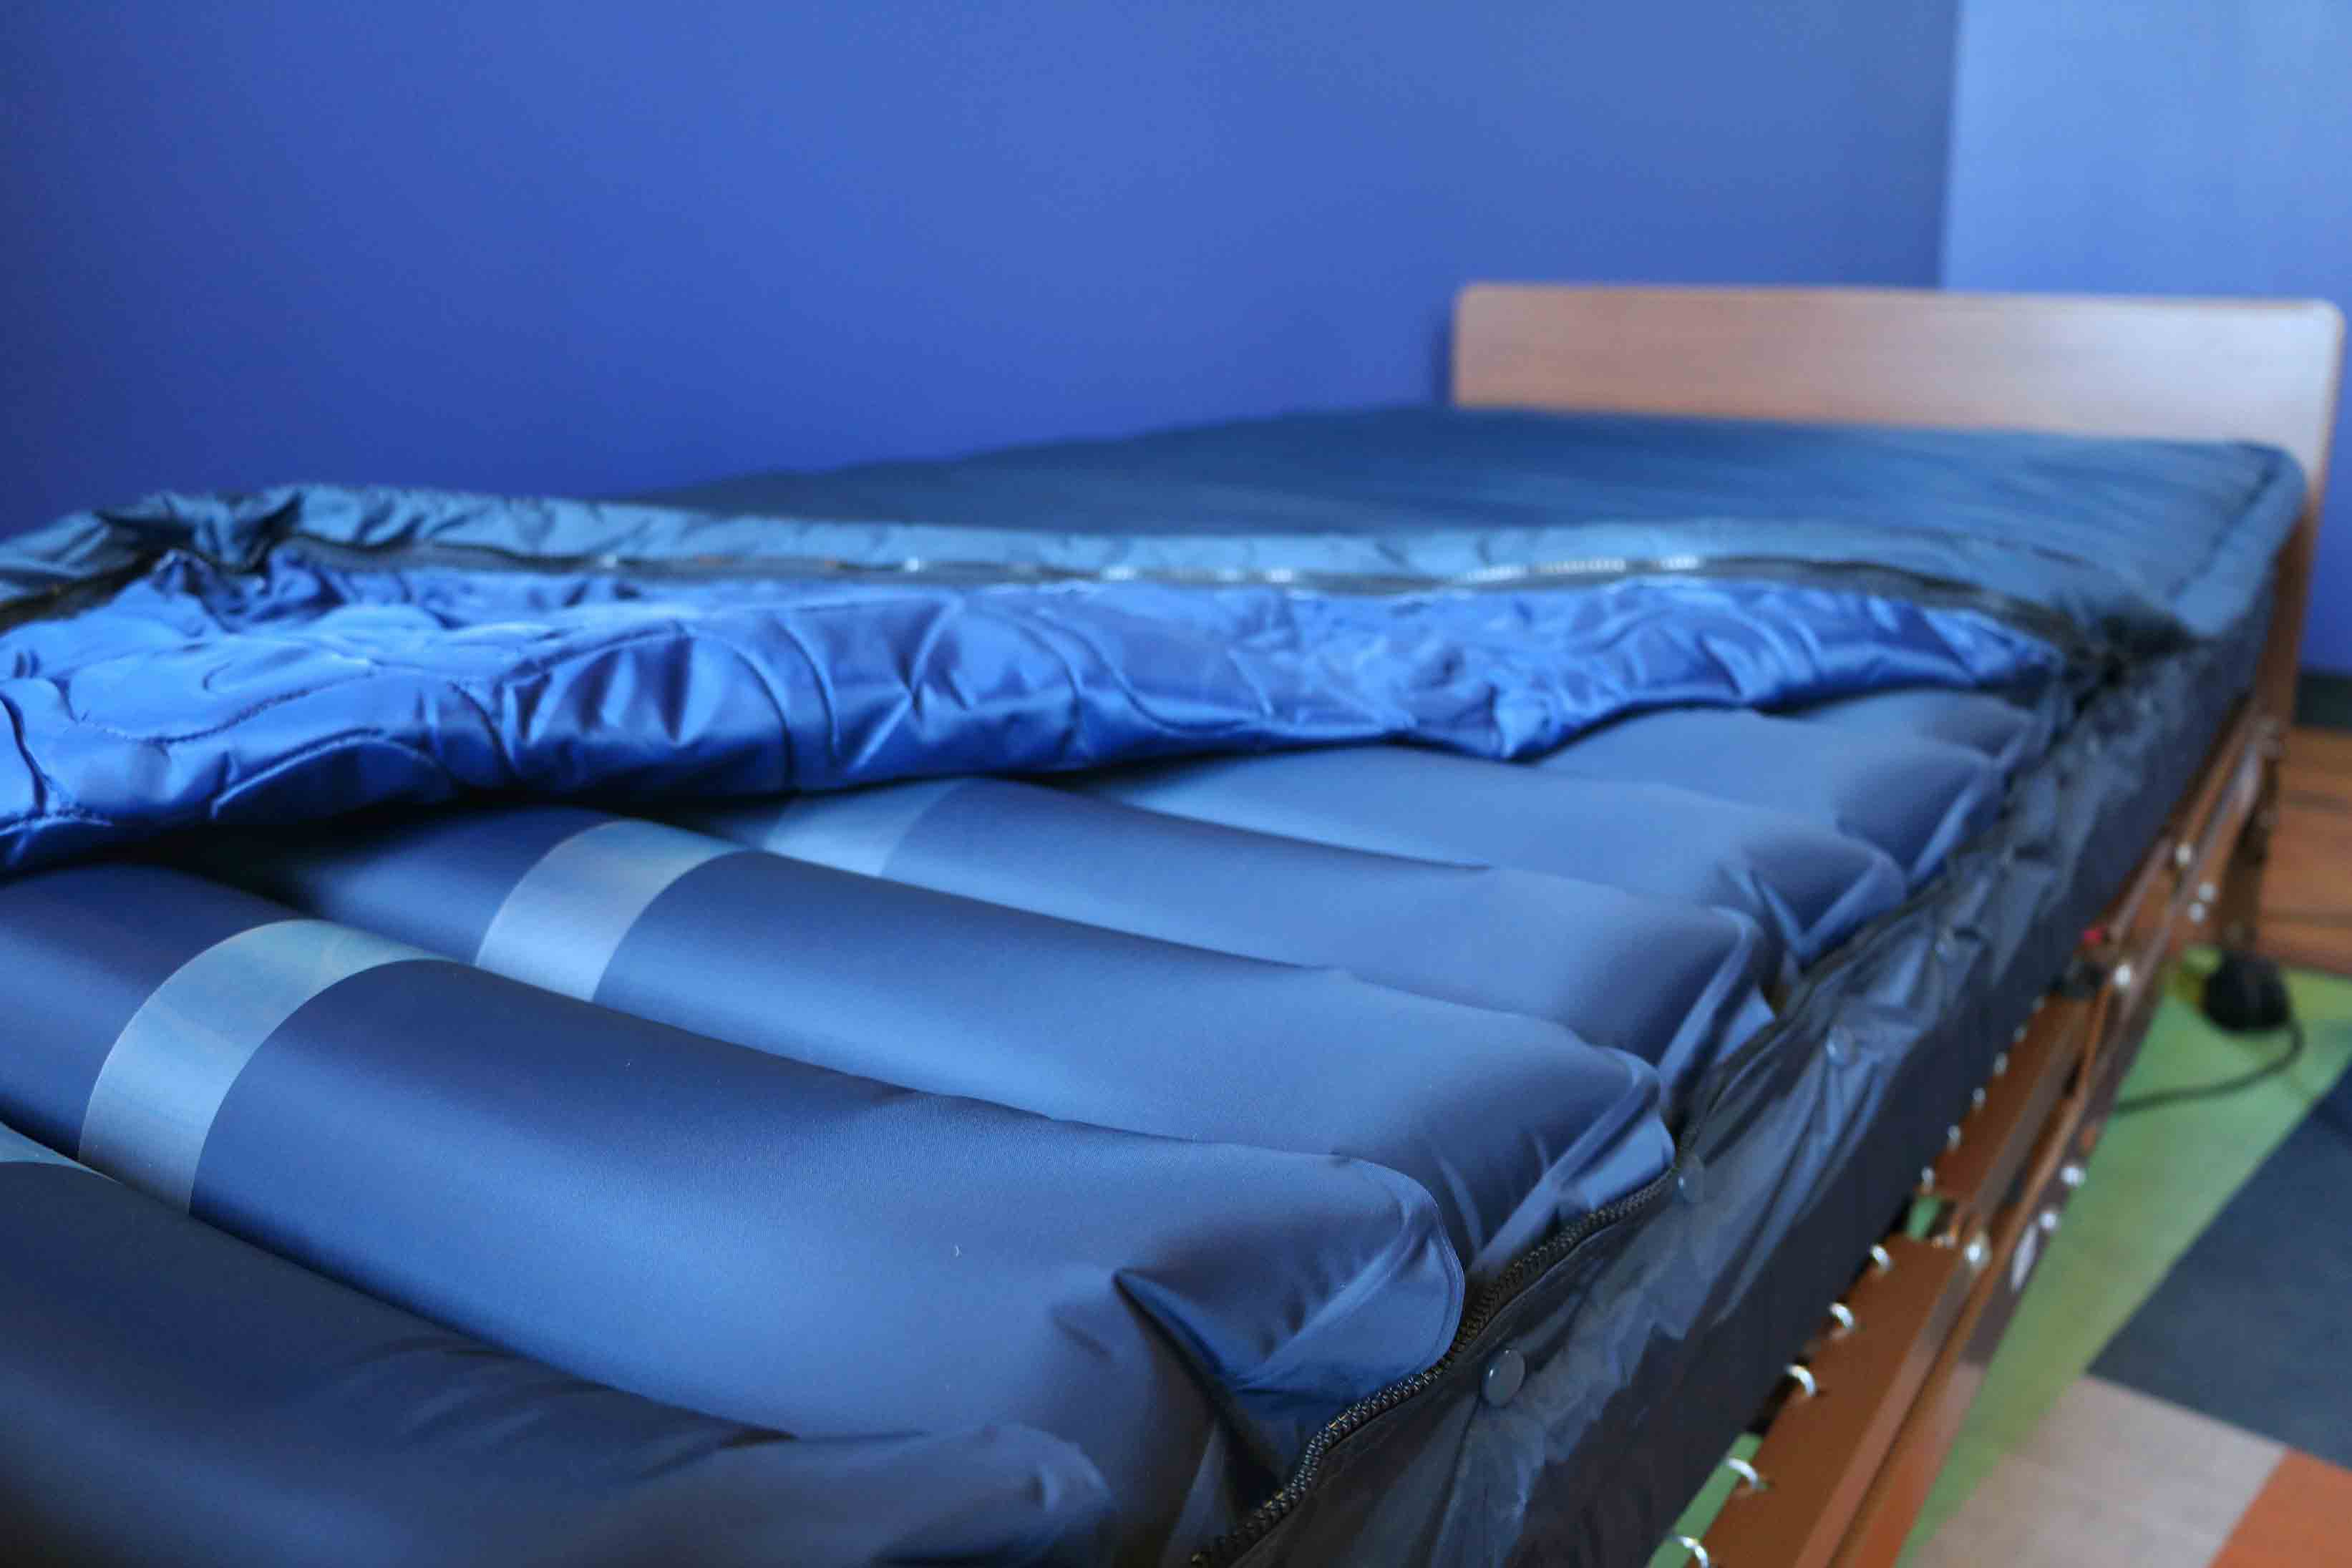 How A Low Air Loss Mattress Can Help Keep Patients Wound